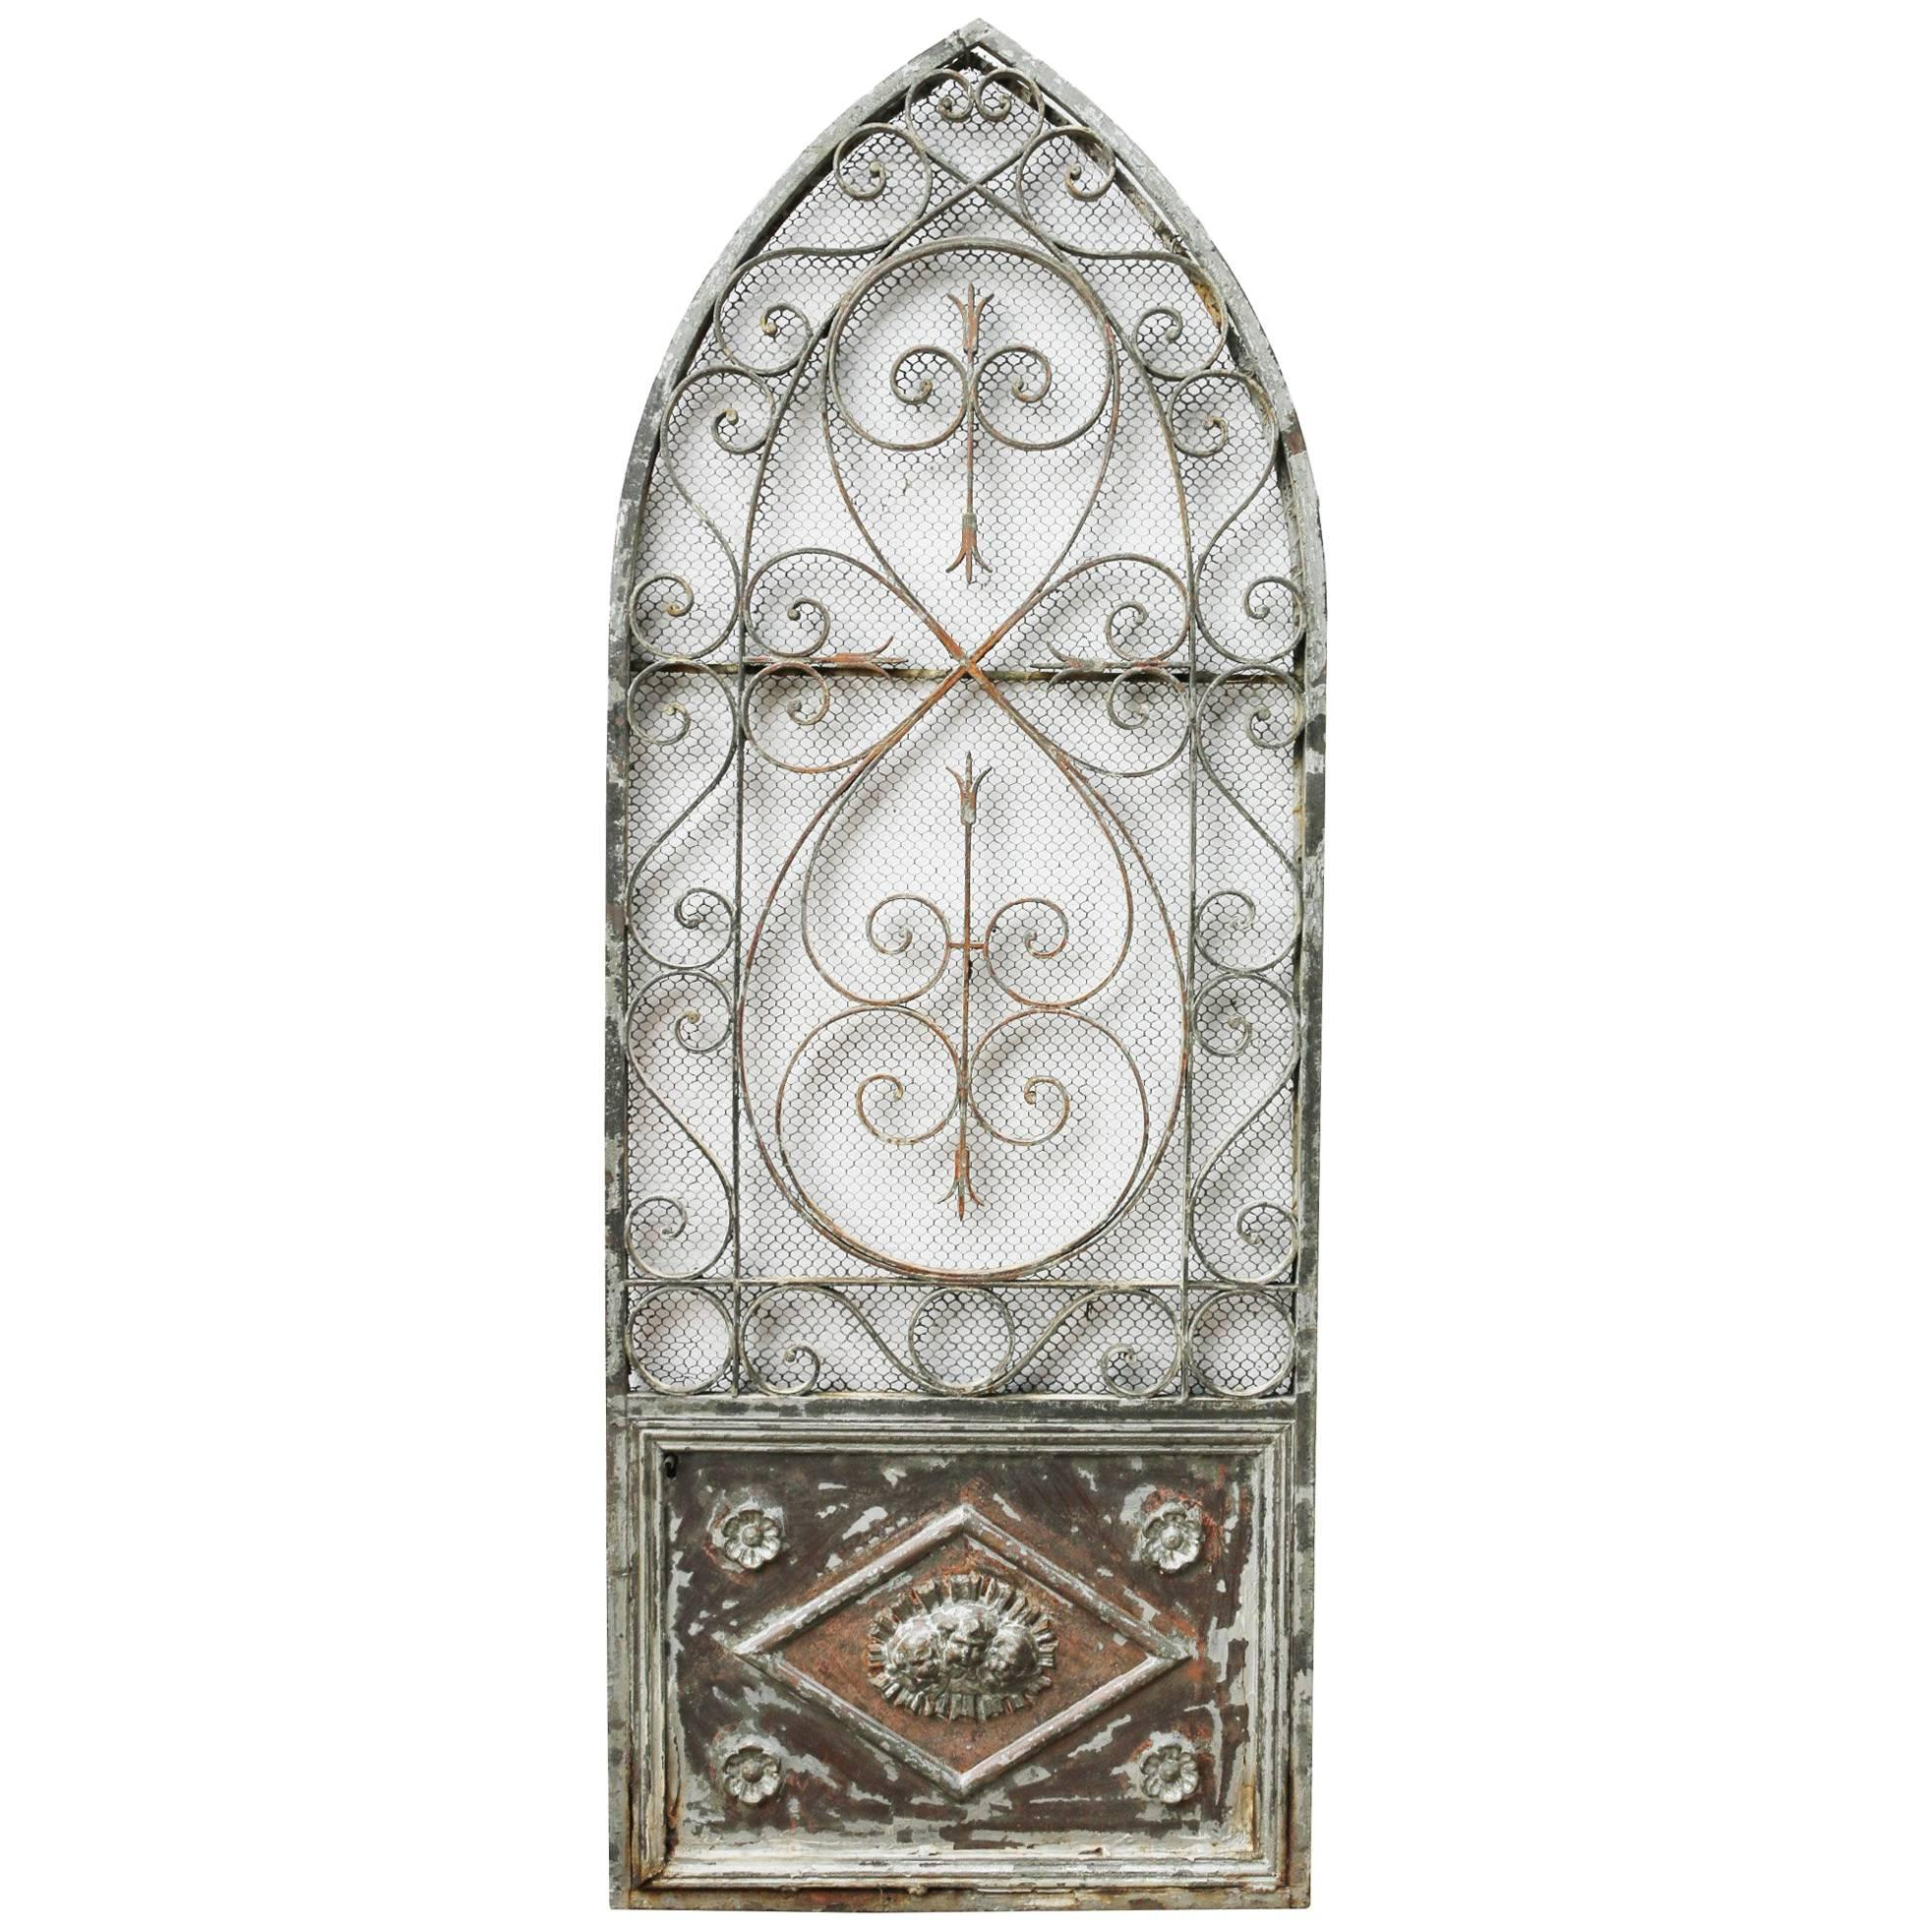 French Wrought Iron Arched Gate, circa 1900